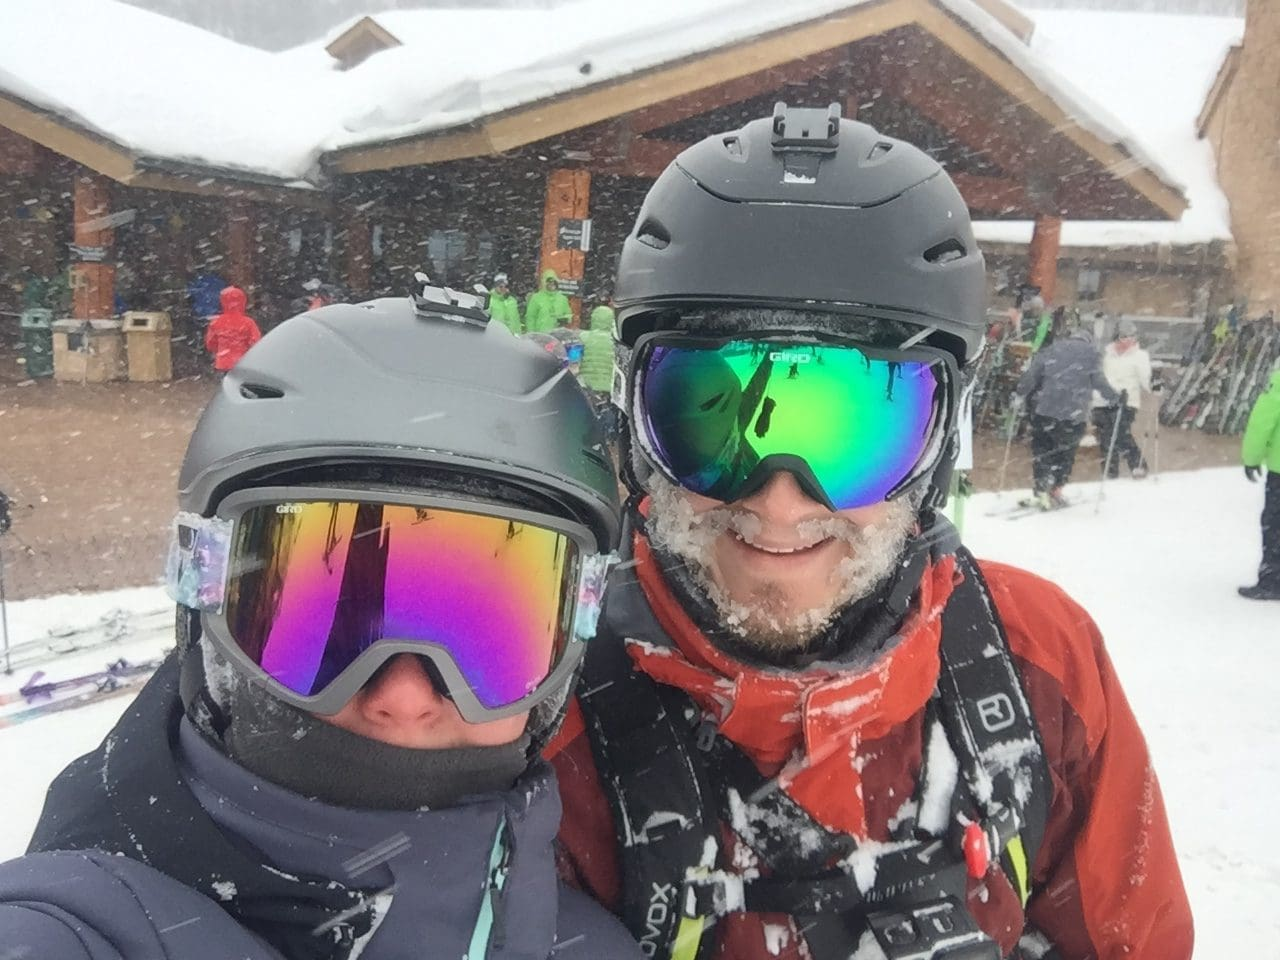 First time at Deer Valley